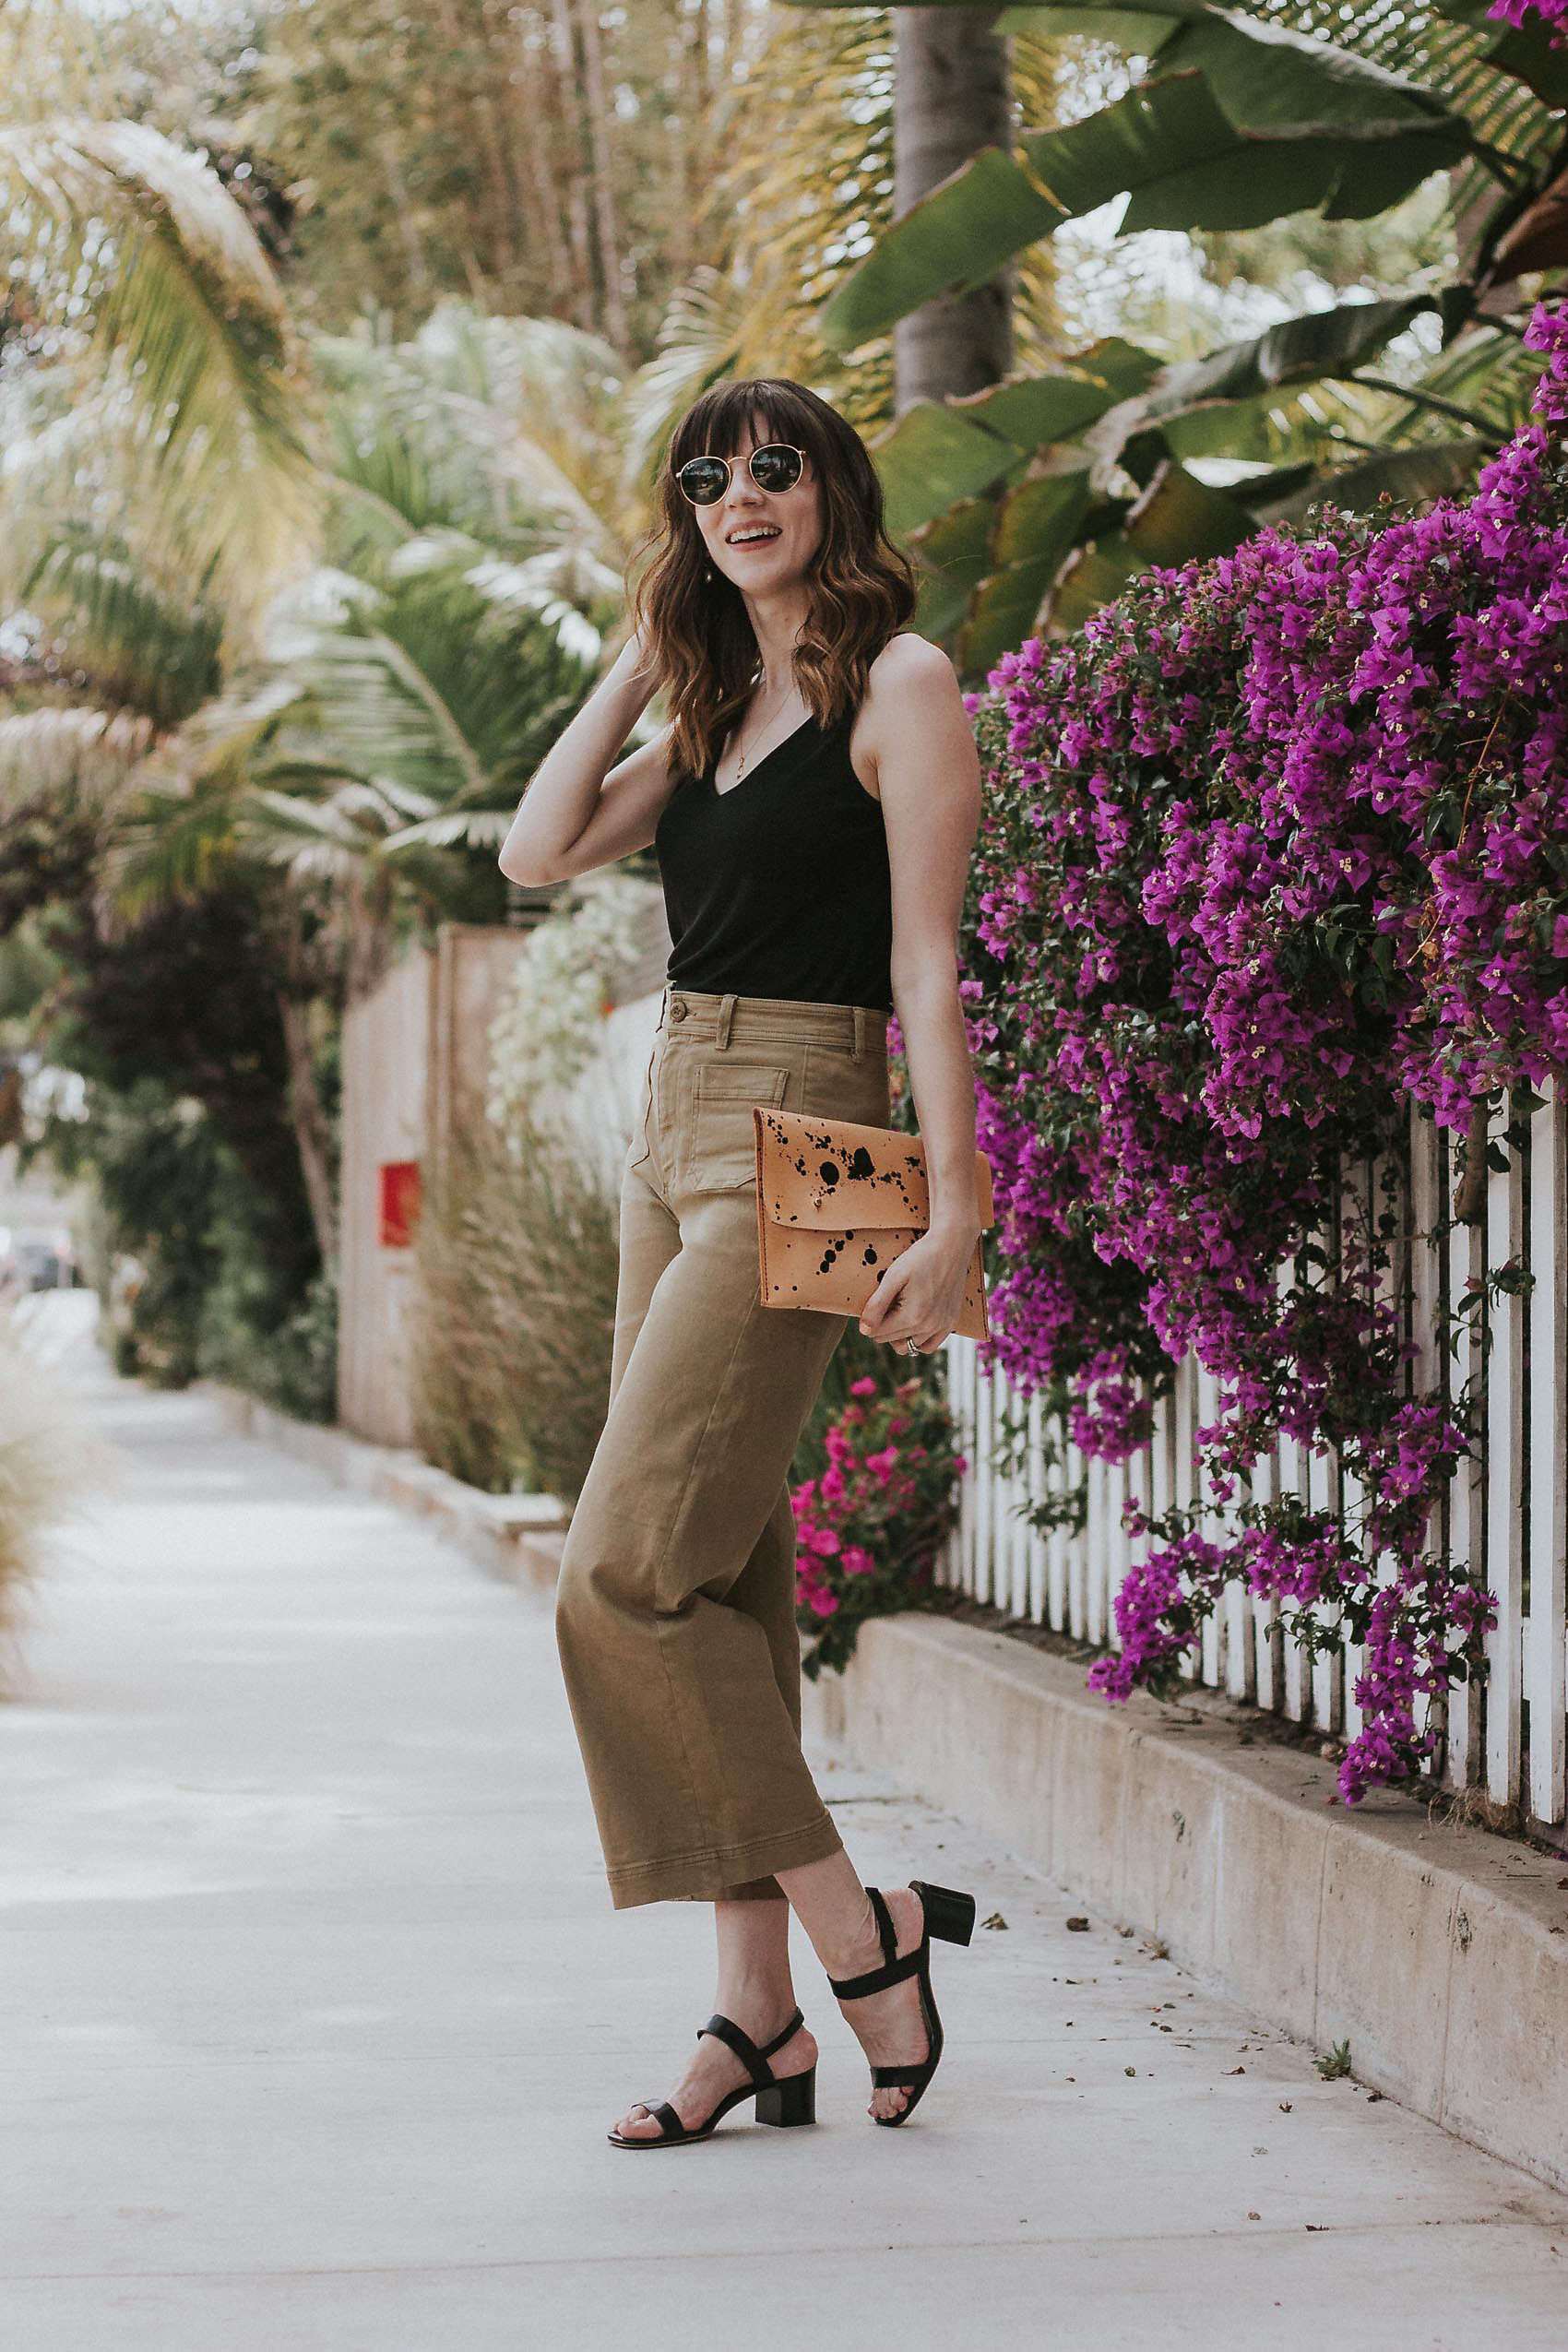 Everlane Outfit with Wide Leg Pants, Black Tank, and Block Heel Sandals